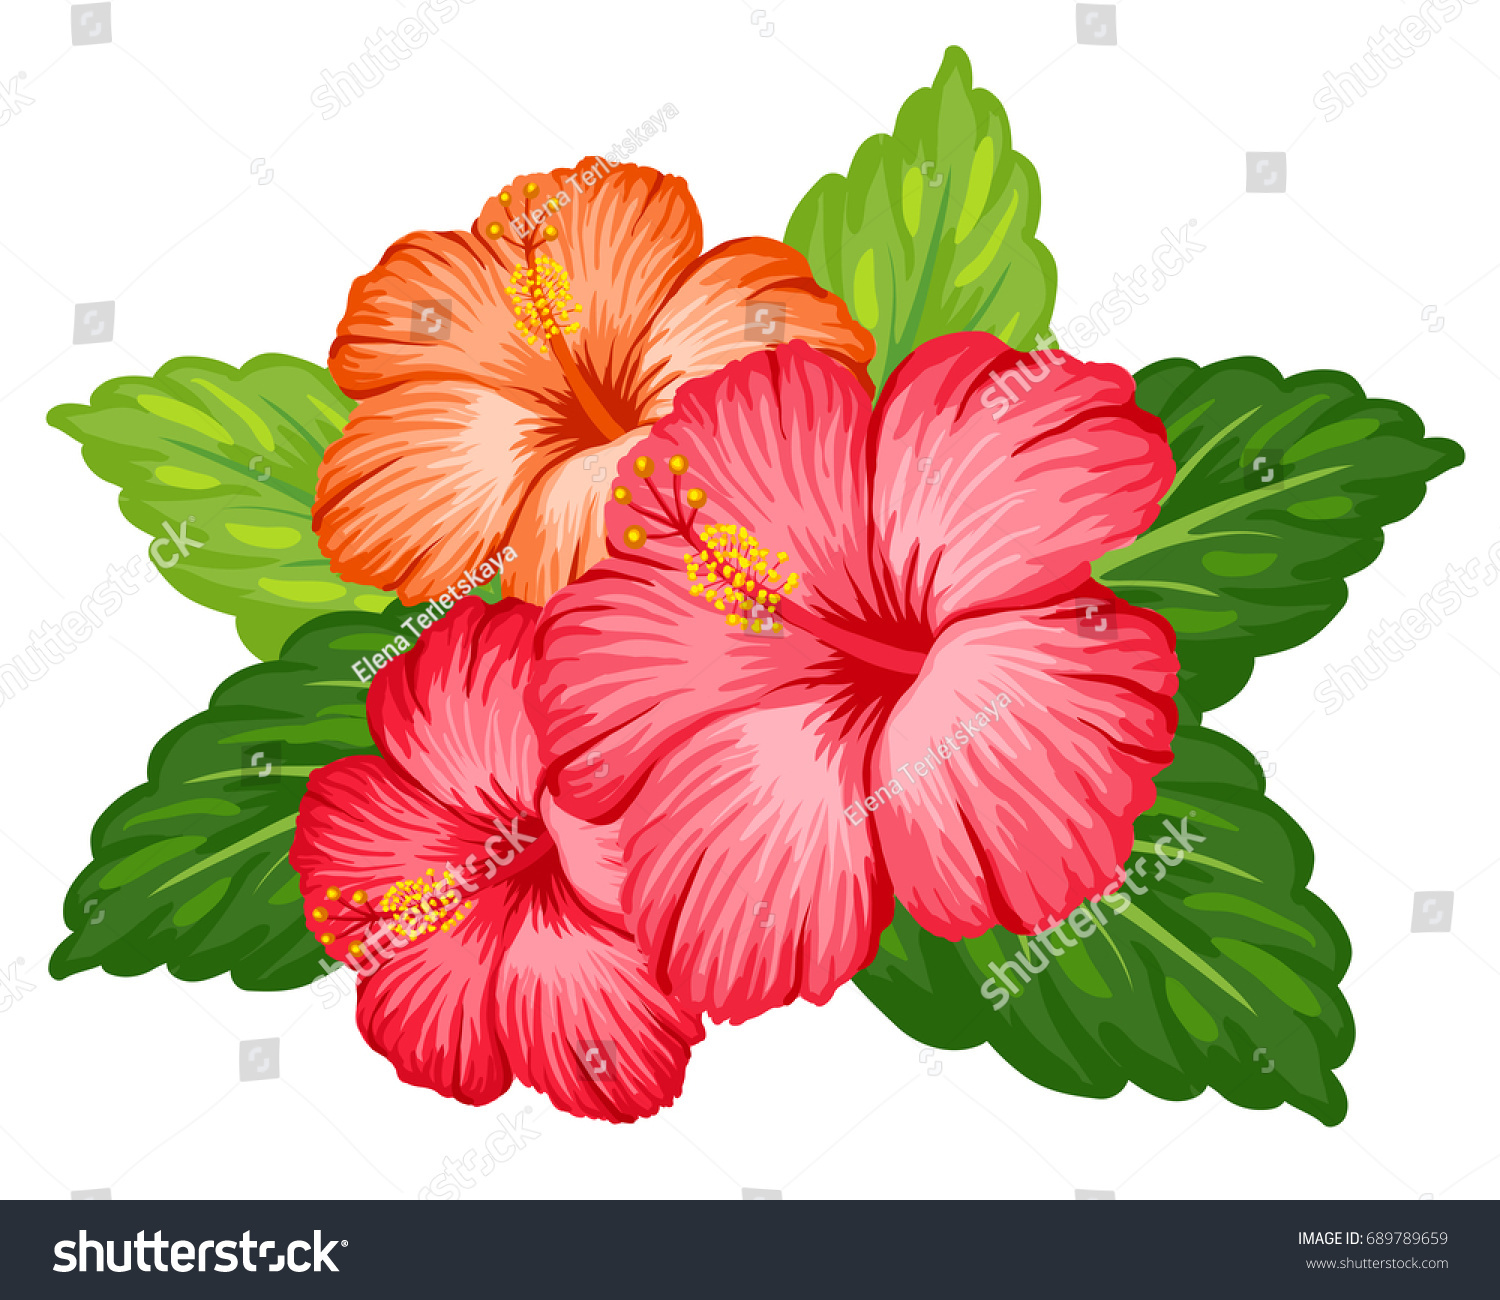 Hibiscus Flower Bouquet Images - Flower Wallpaper HD